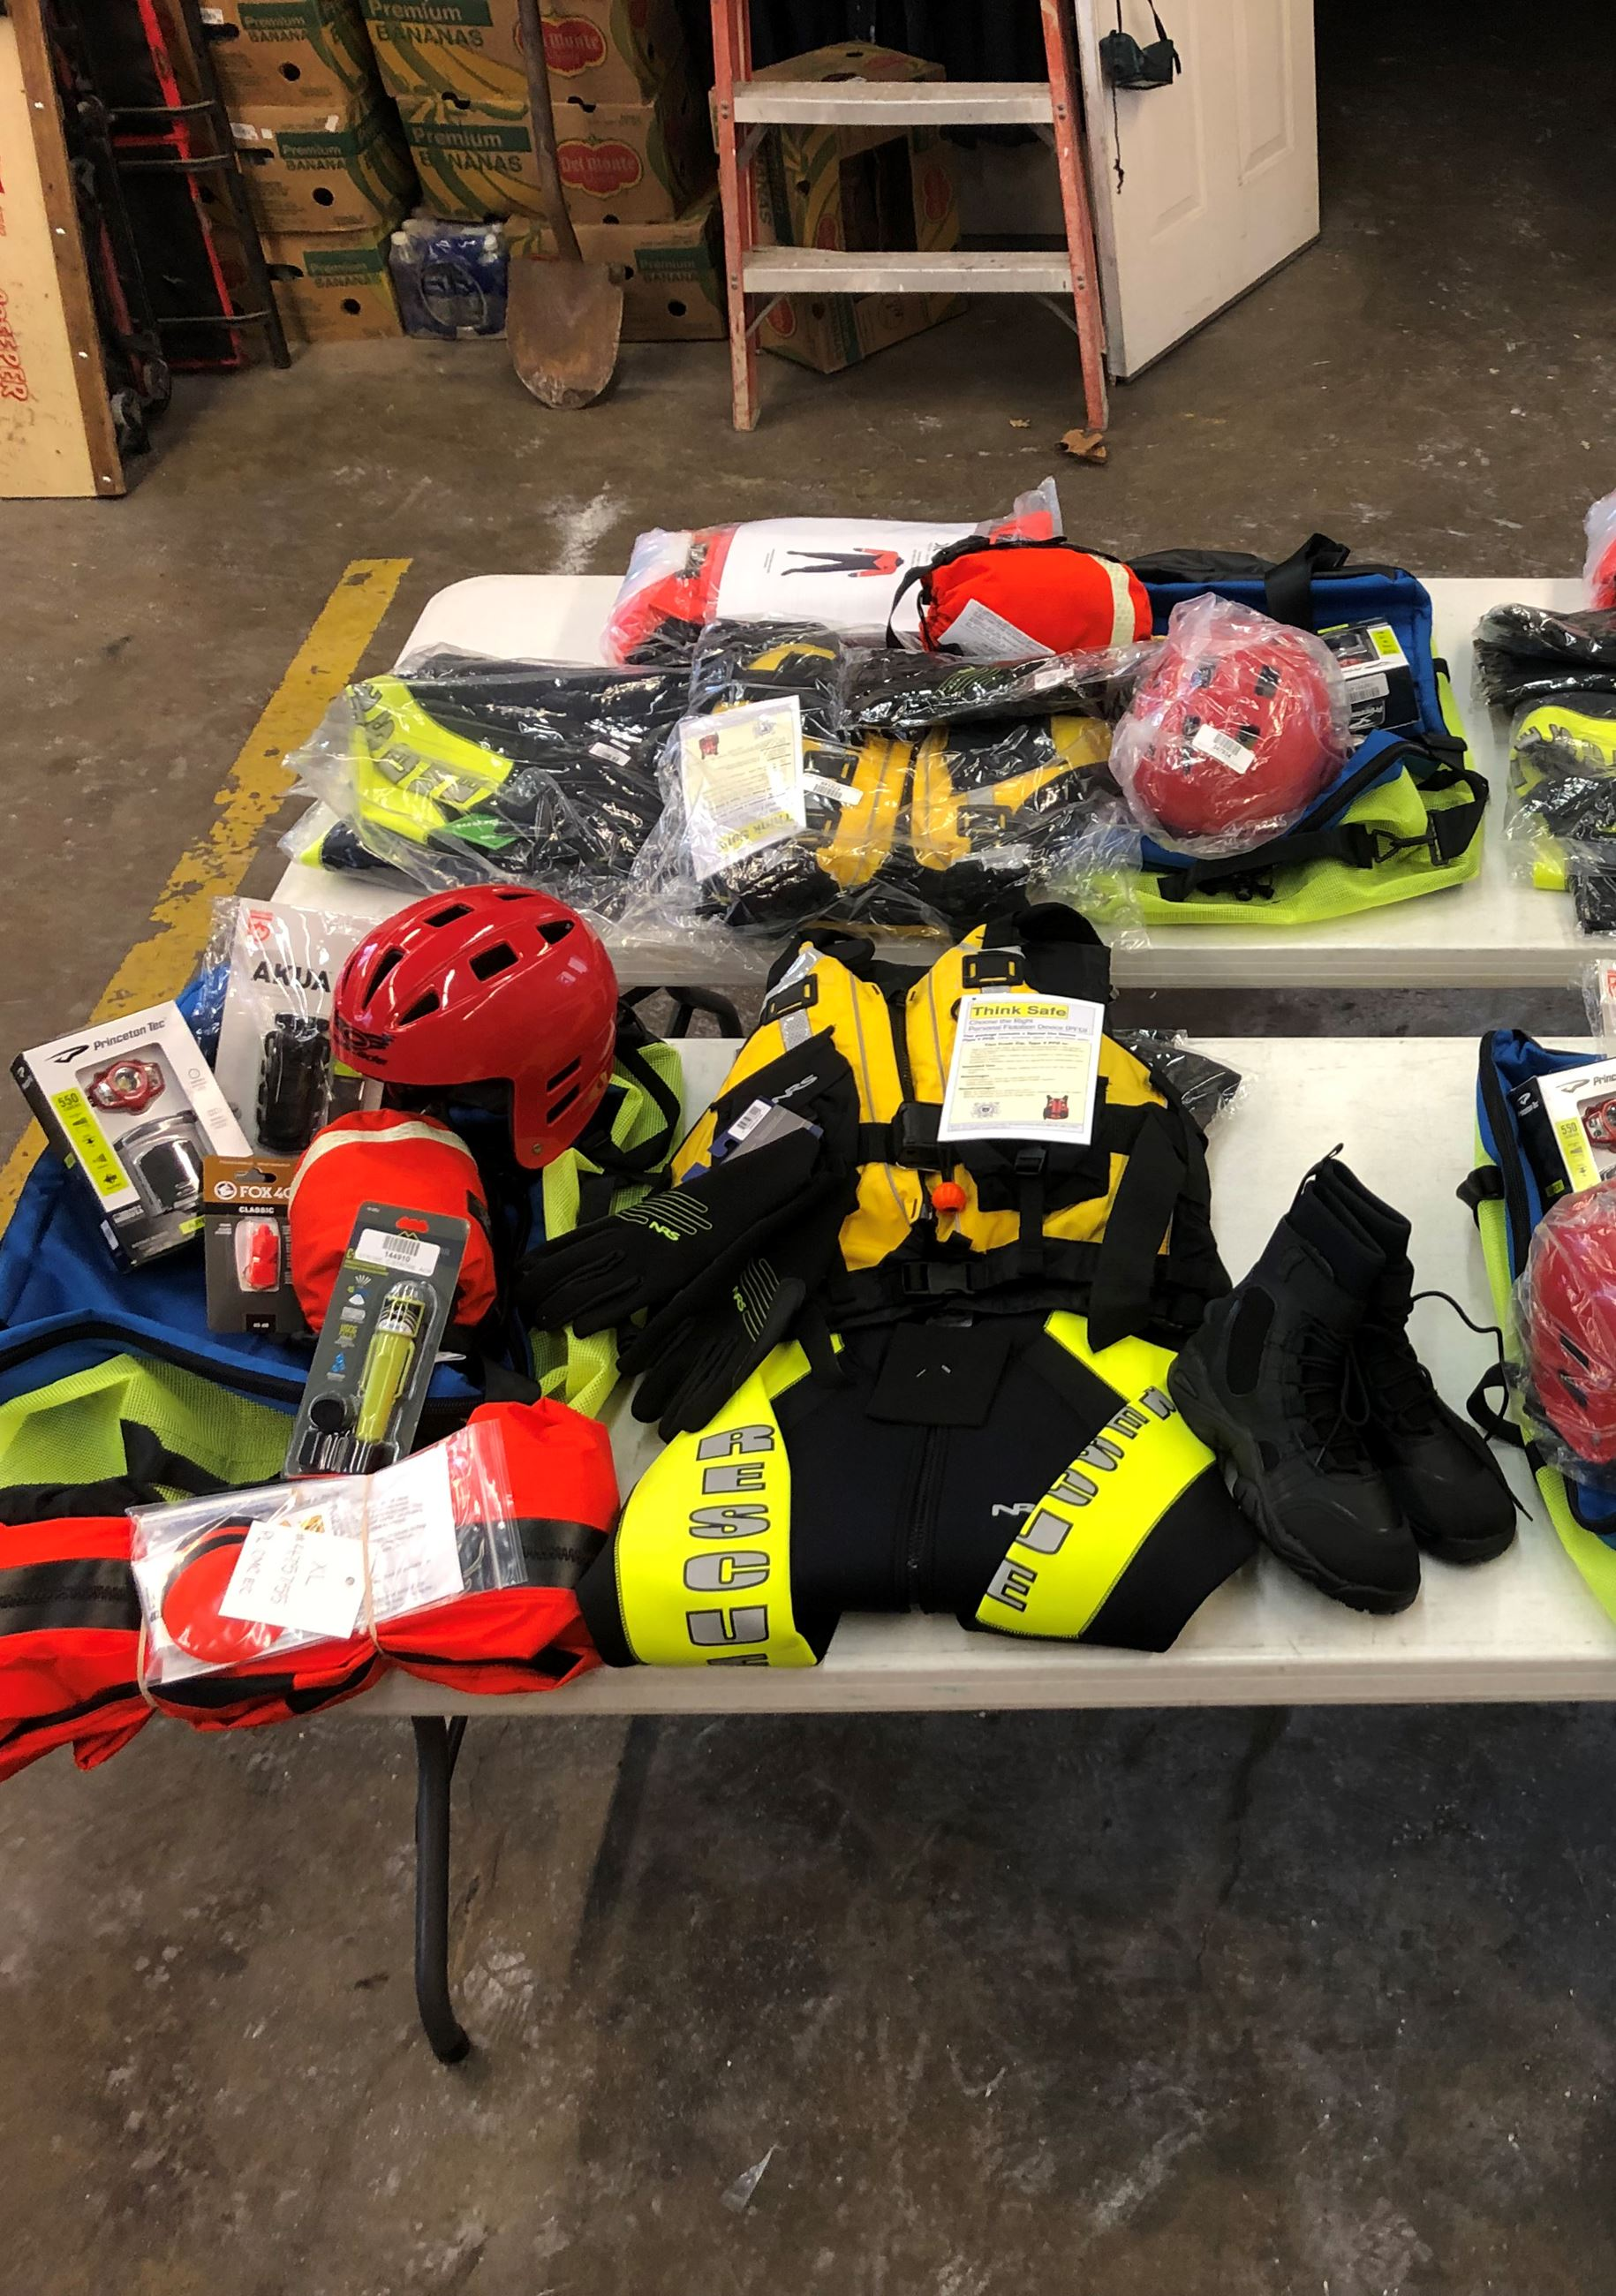 Swift-water rescue equipment spread out across a table